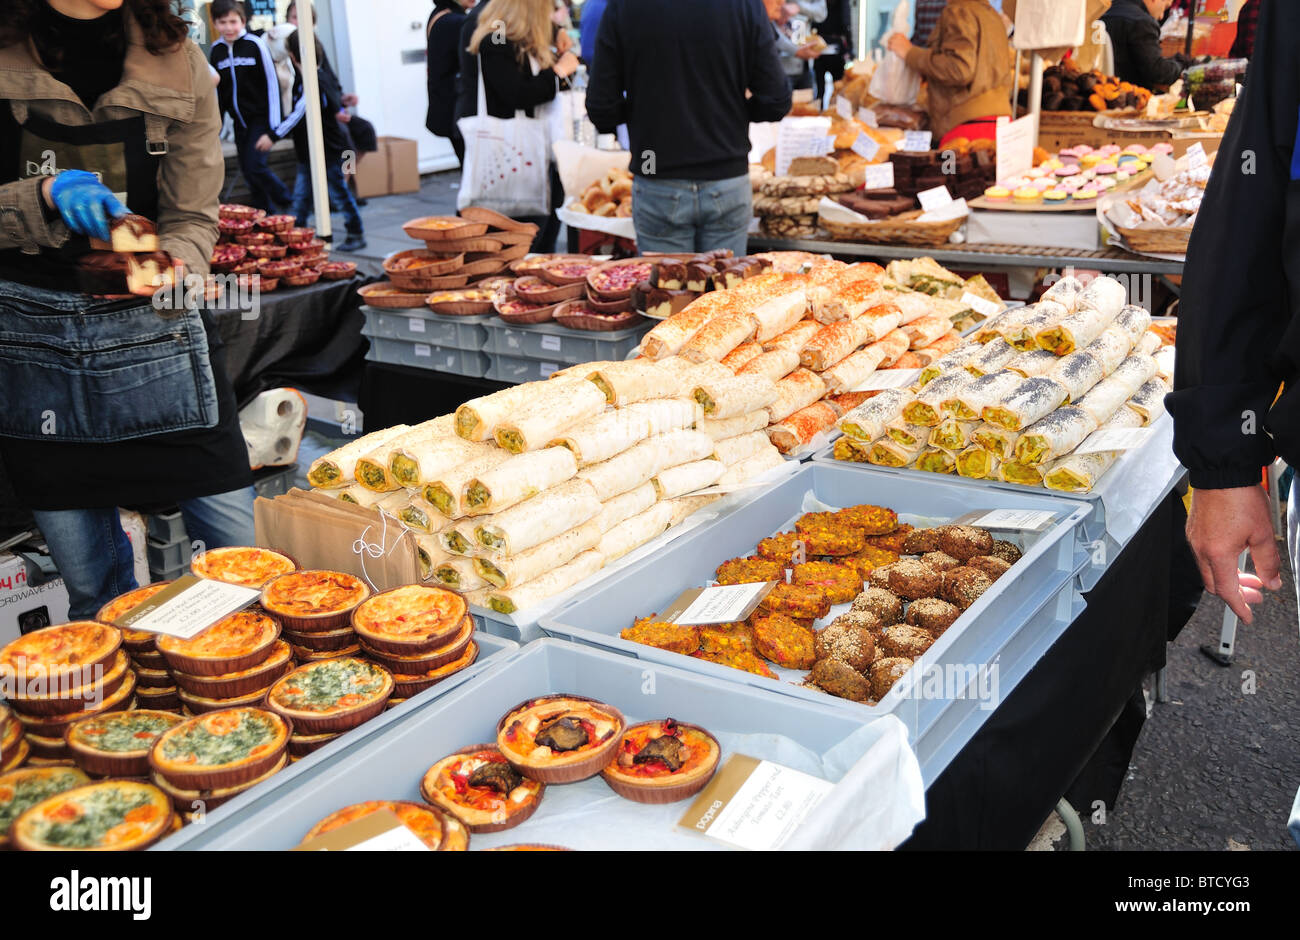 stall selling rustic tarts in portobello market notting hill stock photo 32247155 alamy. Black Bedroom Furniture Sets. Home Design Ideas